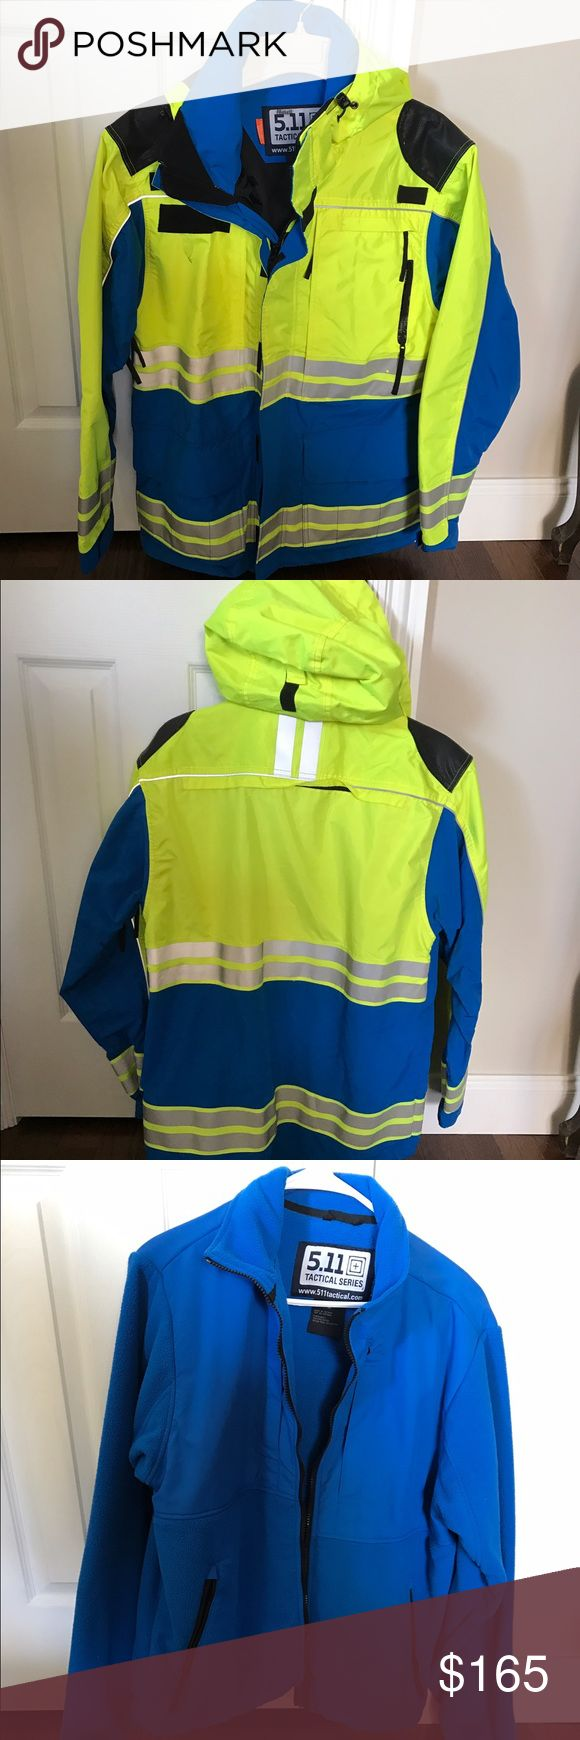 5.11 Tactical EMT/Fire Waterproof Coat 5.11 Tactical EMT/Fire Unisex Waterproof Coat with removable liner jacket. Worn very few times. In excellent condition. Price is FIRM. 5.11 Tactical Jackets & Coats